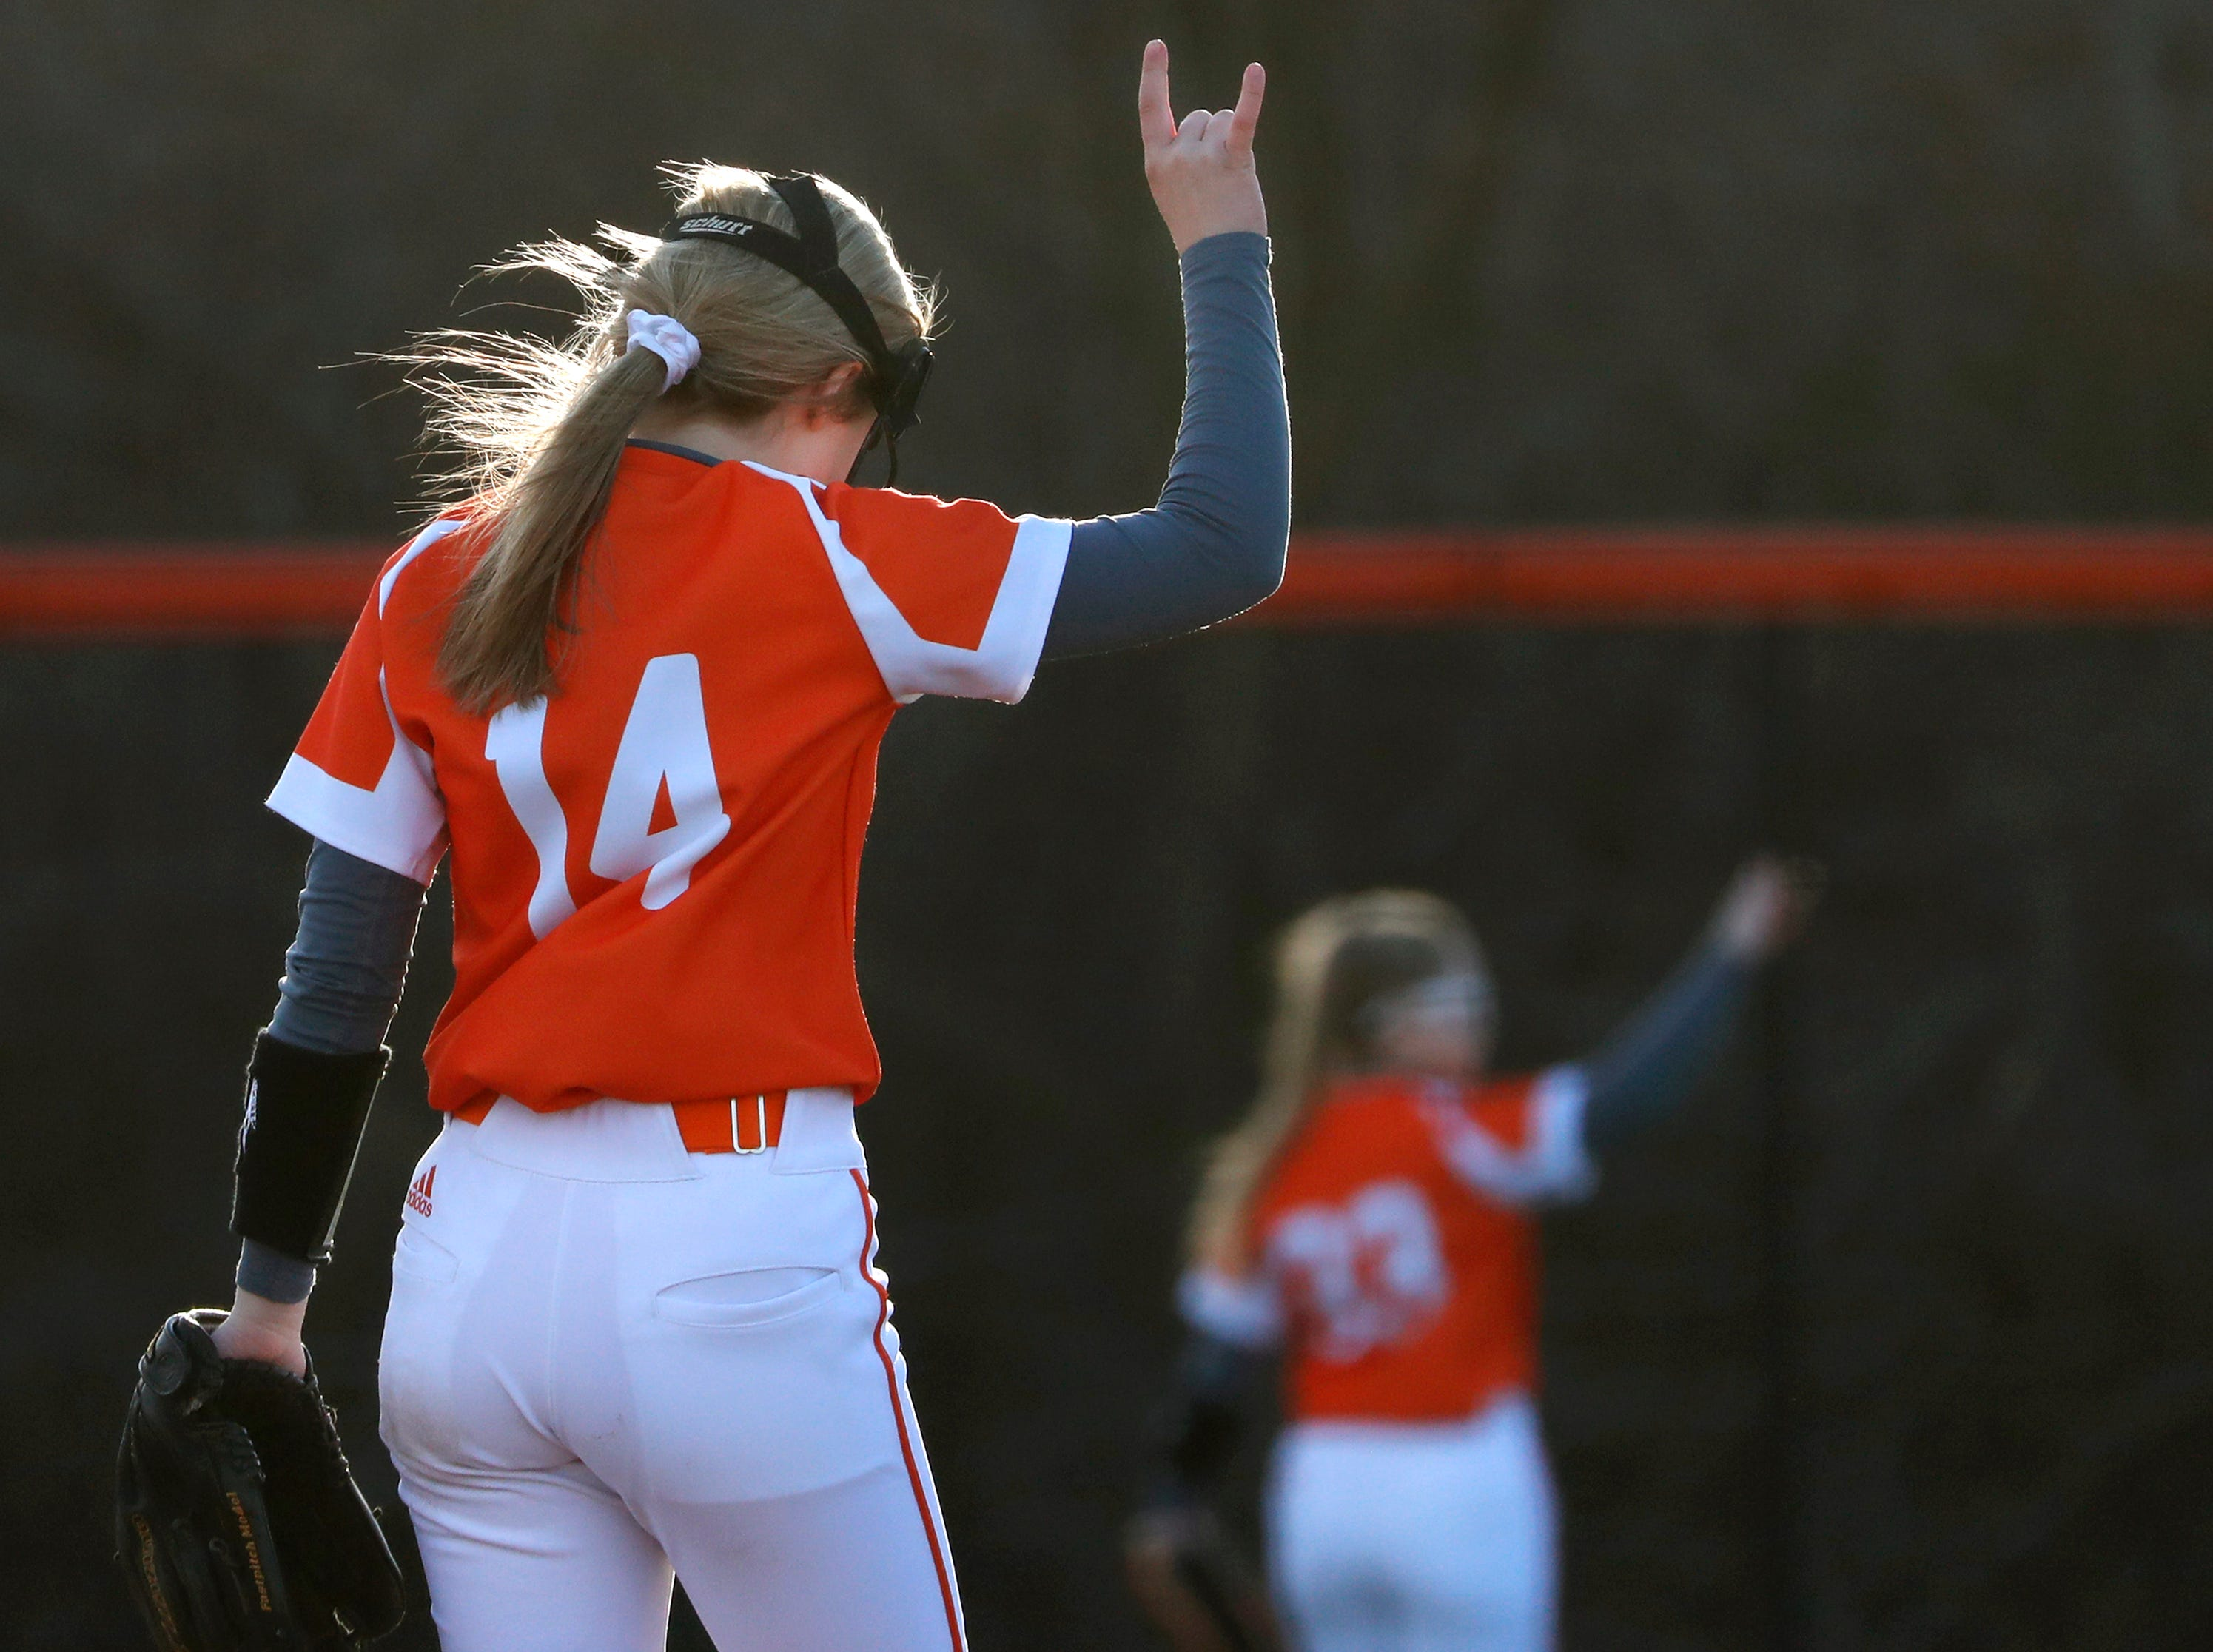 Kaukauna High School's Khloe Hinkens signals that there are two outs in the final inning of their game against Oshkosh West High School Tuesday, April 9, 2019, in Kaukauna, Wis. Kaukauna High School defeated Oshkosh West High School 3-1.Danny Damiani/USA TODAY NETWORK-Wisconsin